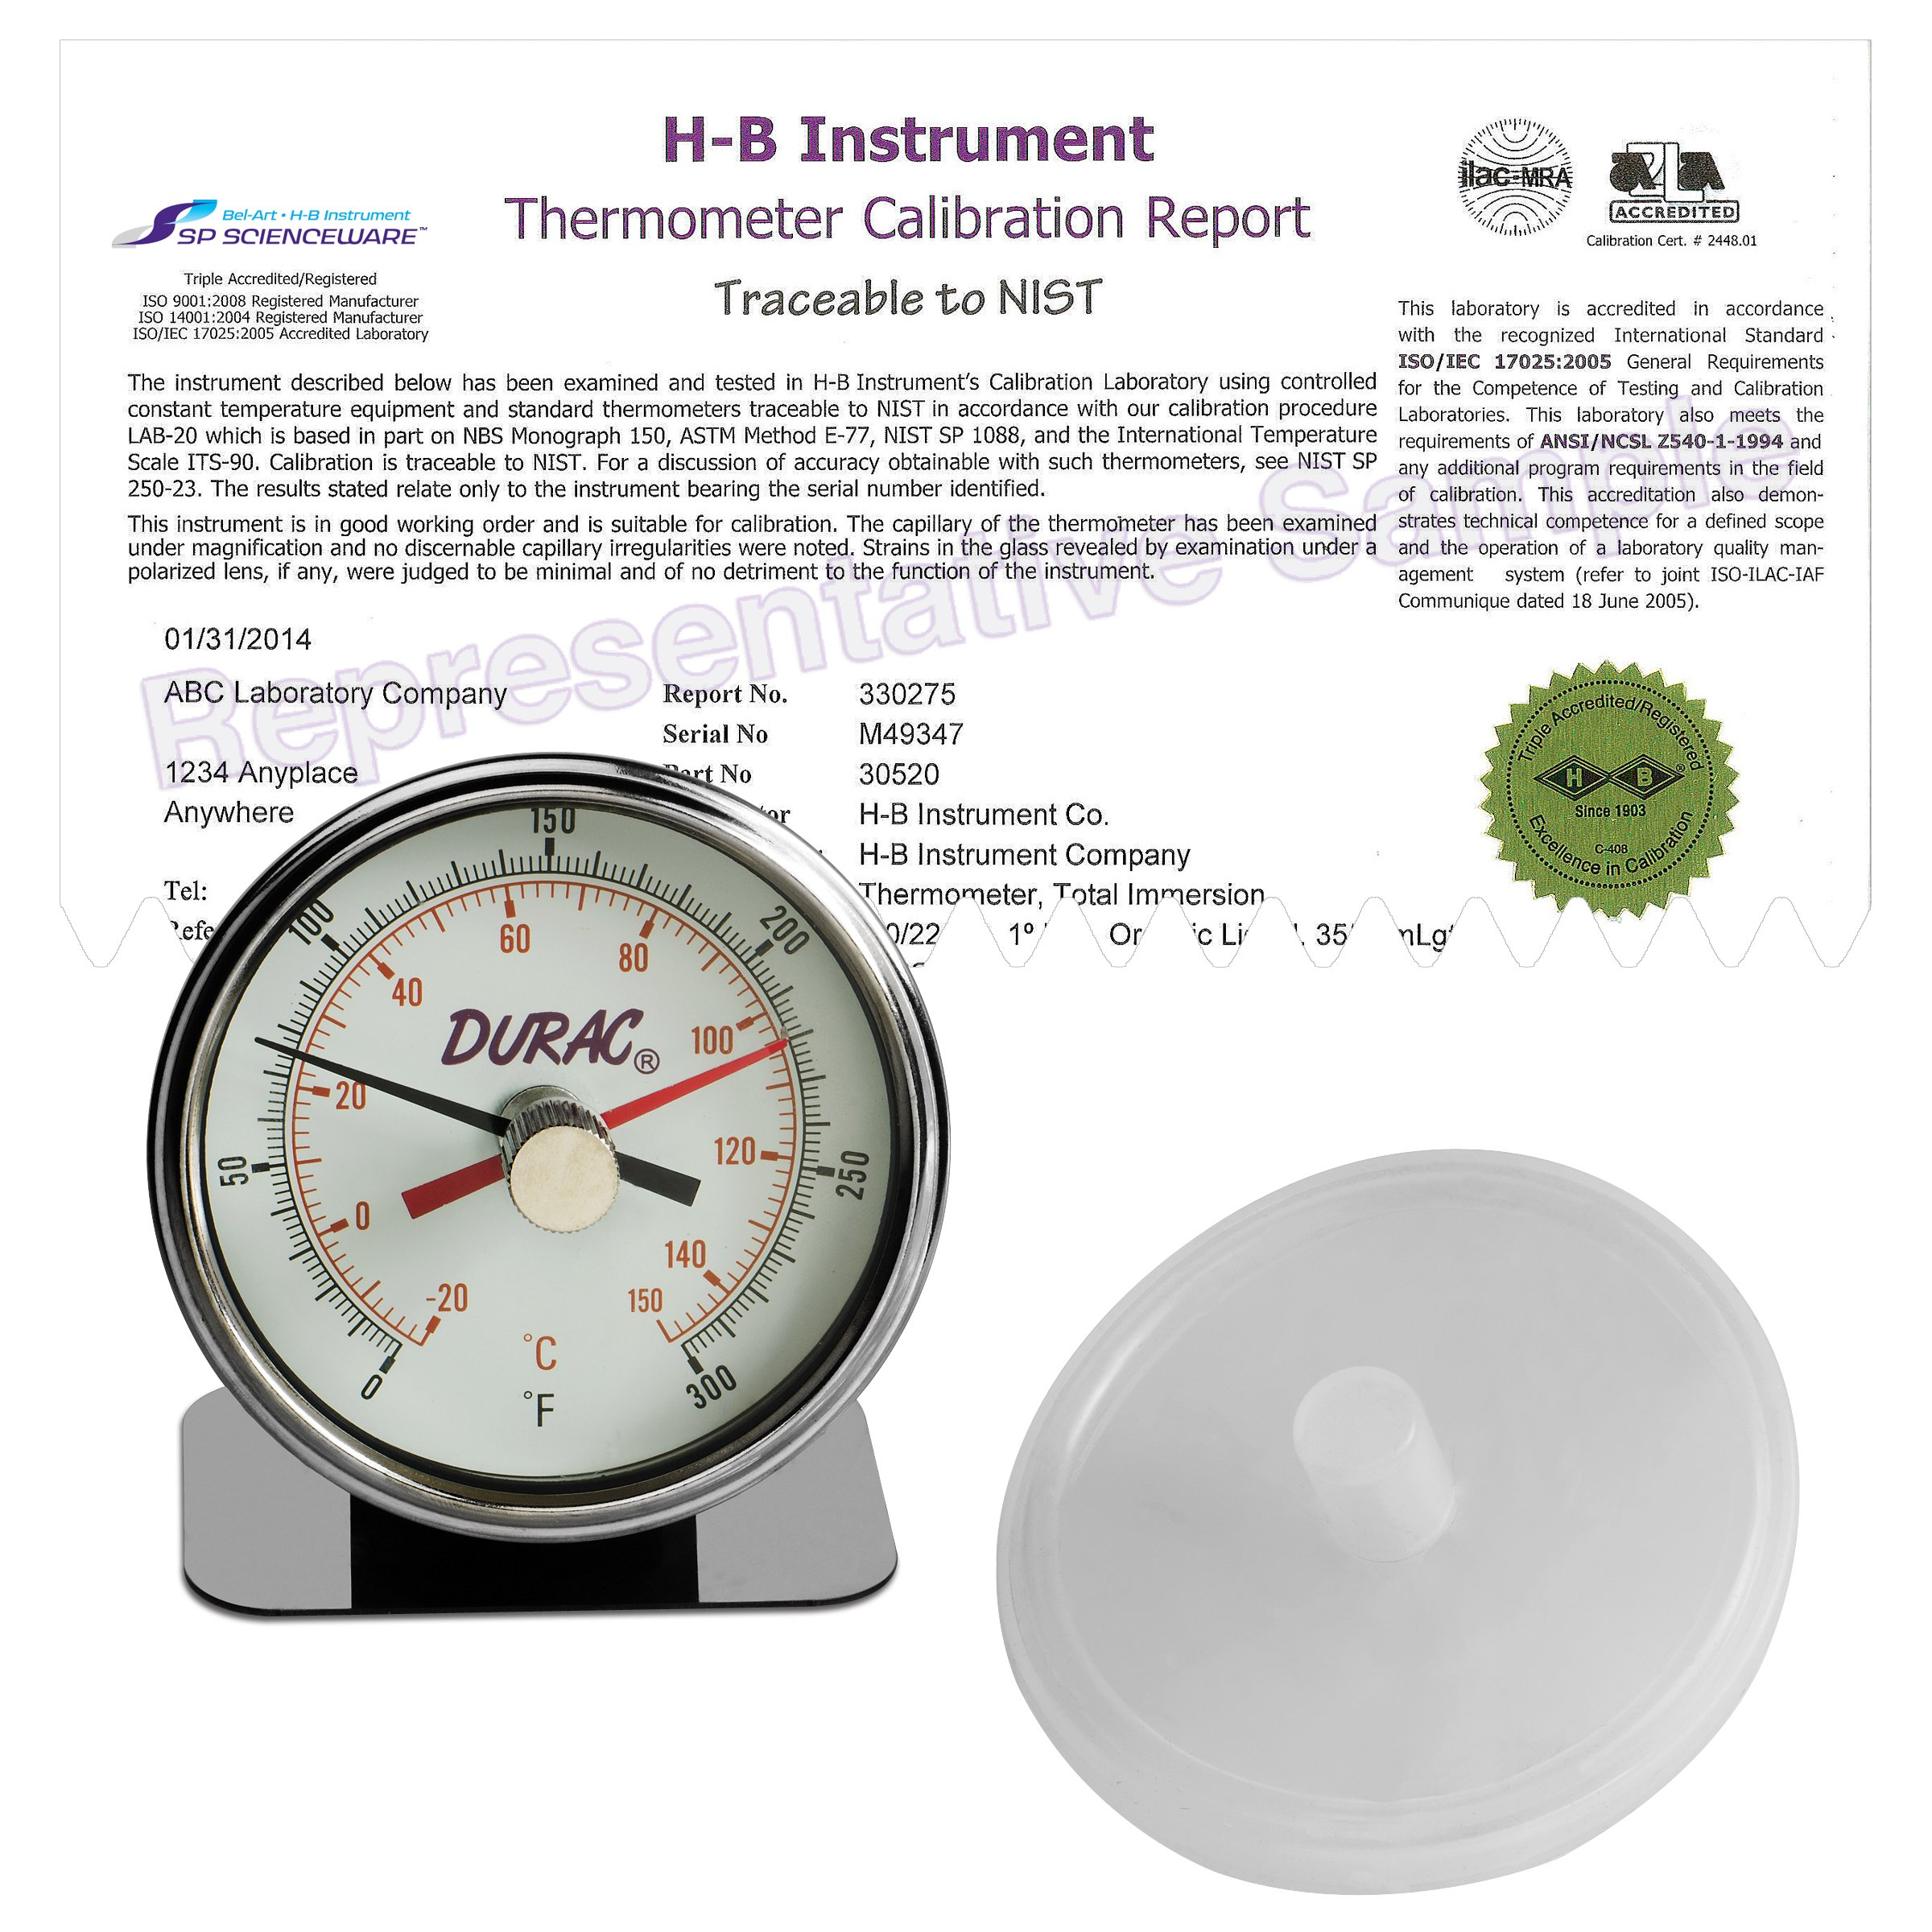 H-B DURAC Maximum Registering/Autoclave Bi-Metal Thermometer; -20 to 150C (0 to 300F), Individual Calibration Report (B60215-0000) by SP Scienceware